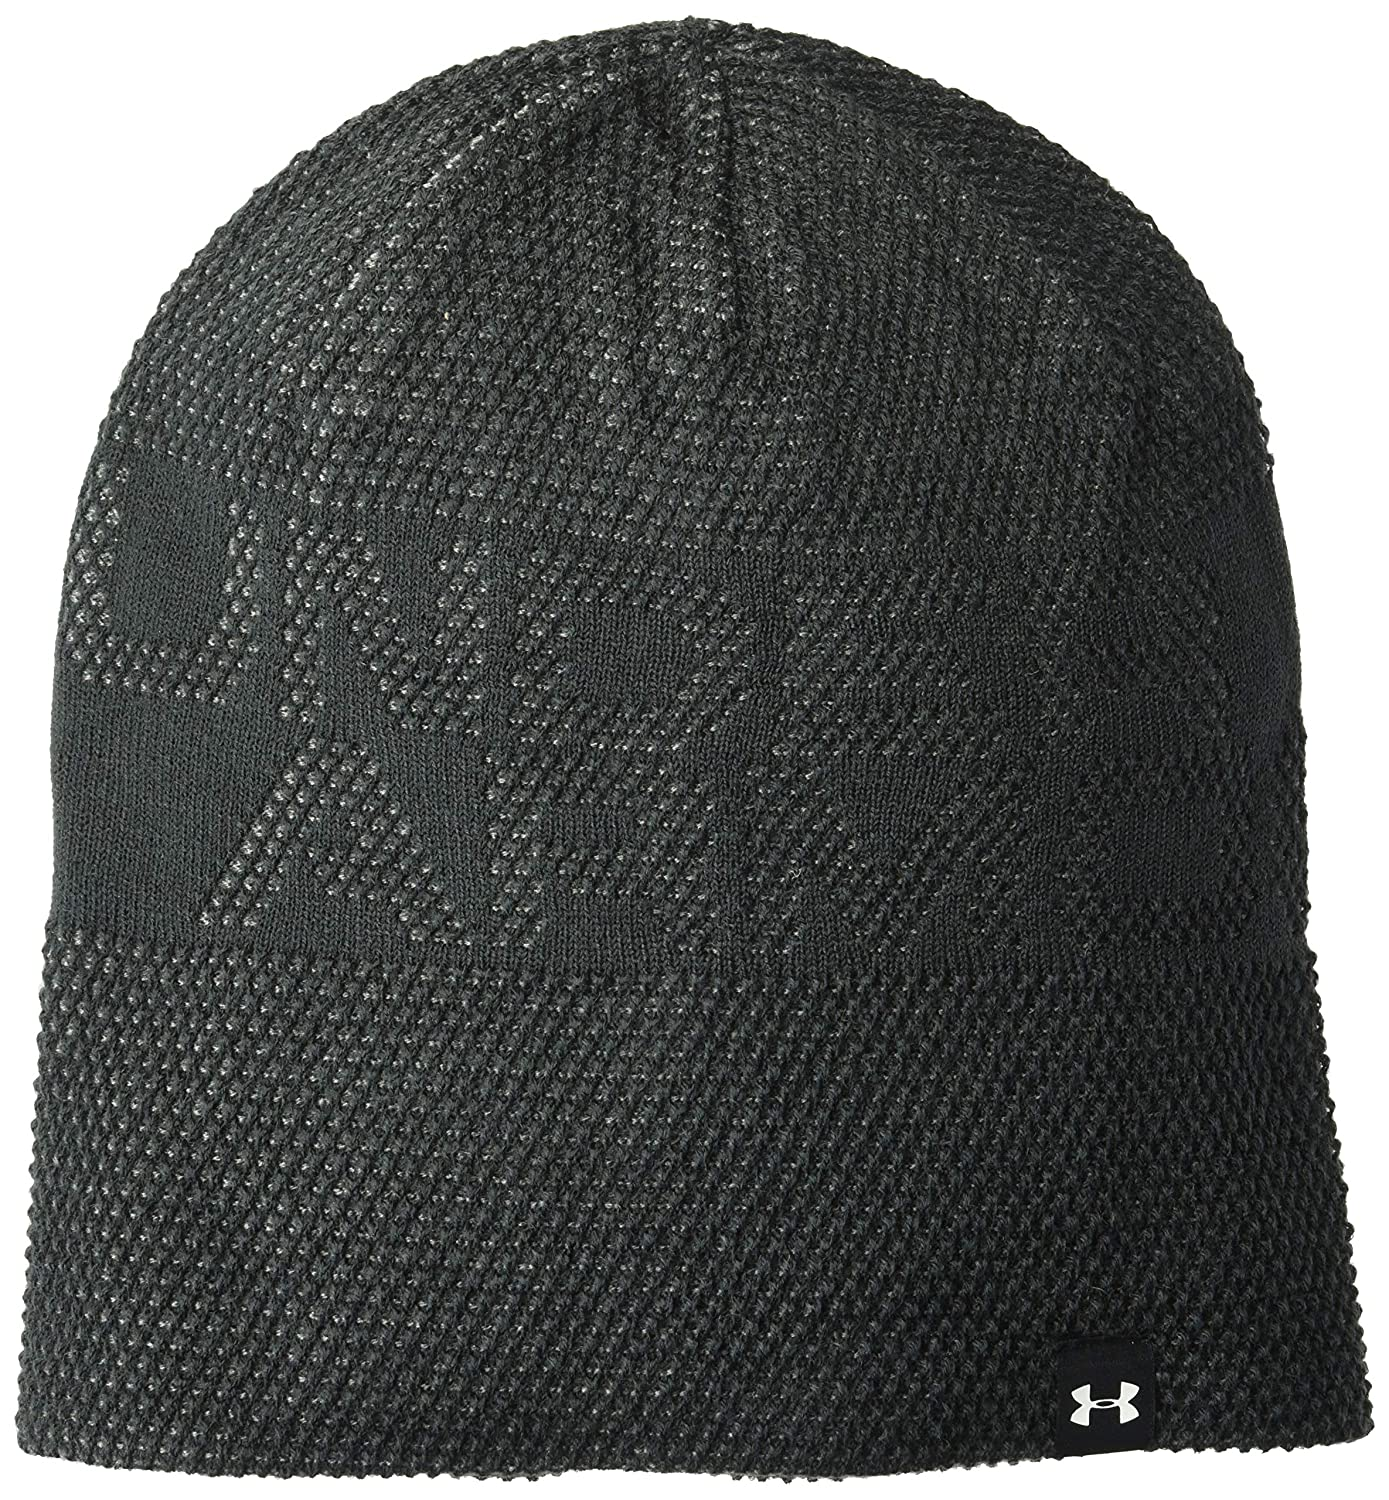 Under Armour Boys Reversible Beanie upd, Black (001)/White, One Size Under Armour Accessories 1318593